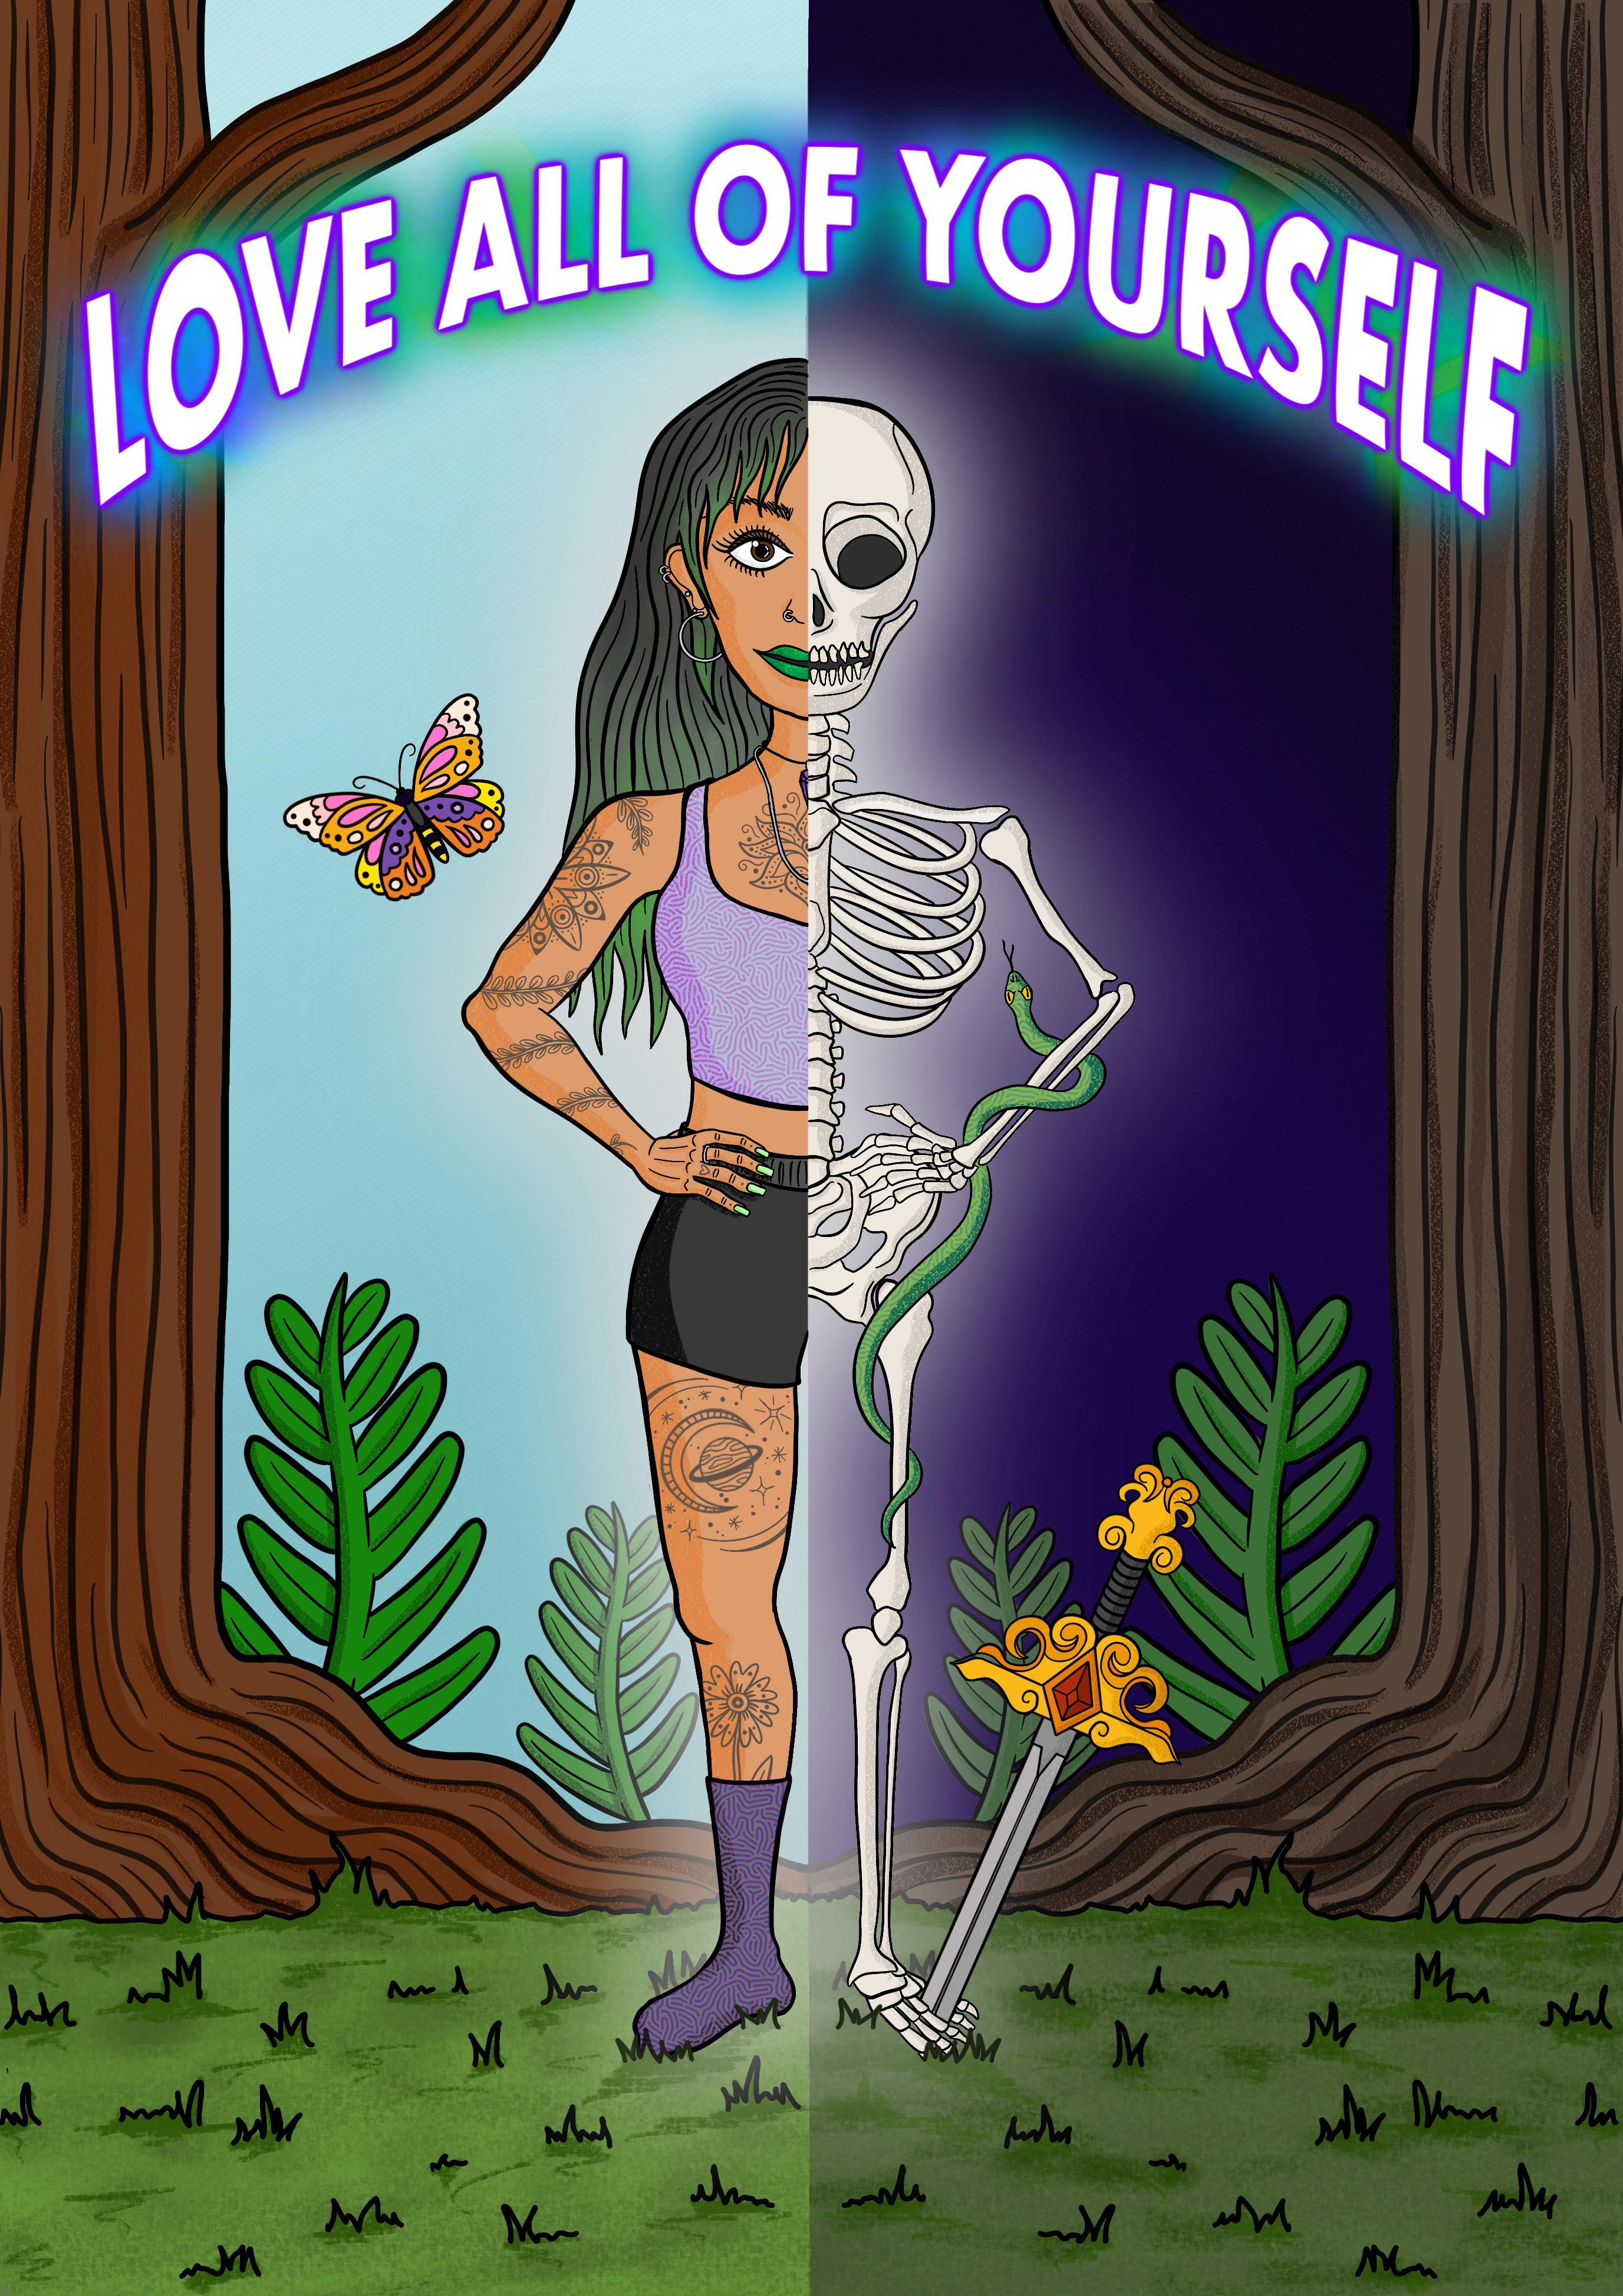 """[Image] 'Love All Of Yourself"""" – Outsides, insides, creepy bits and the rest!"""